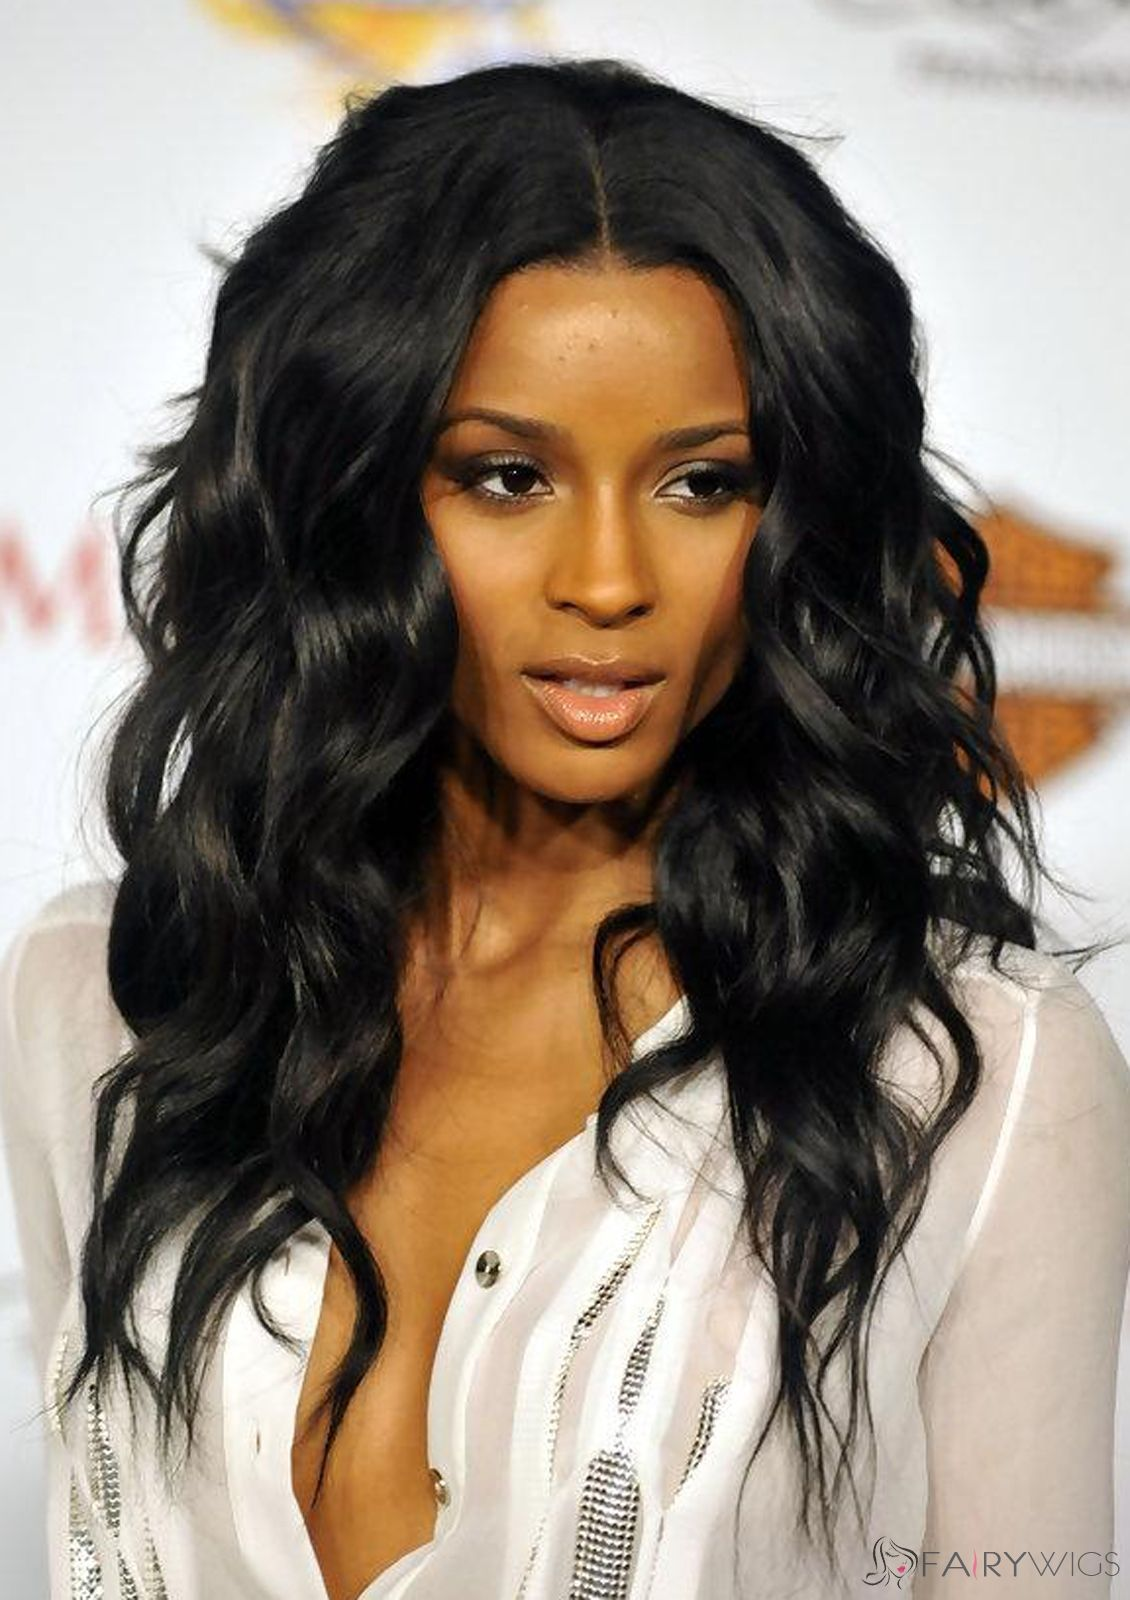 Faddish Long Wavy Black African American Lace Wigs for Women | Ciara hair, Wig hairstyles, Curly ...